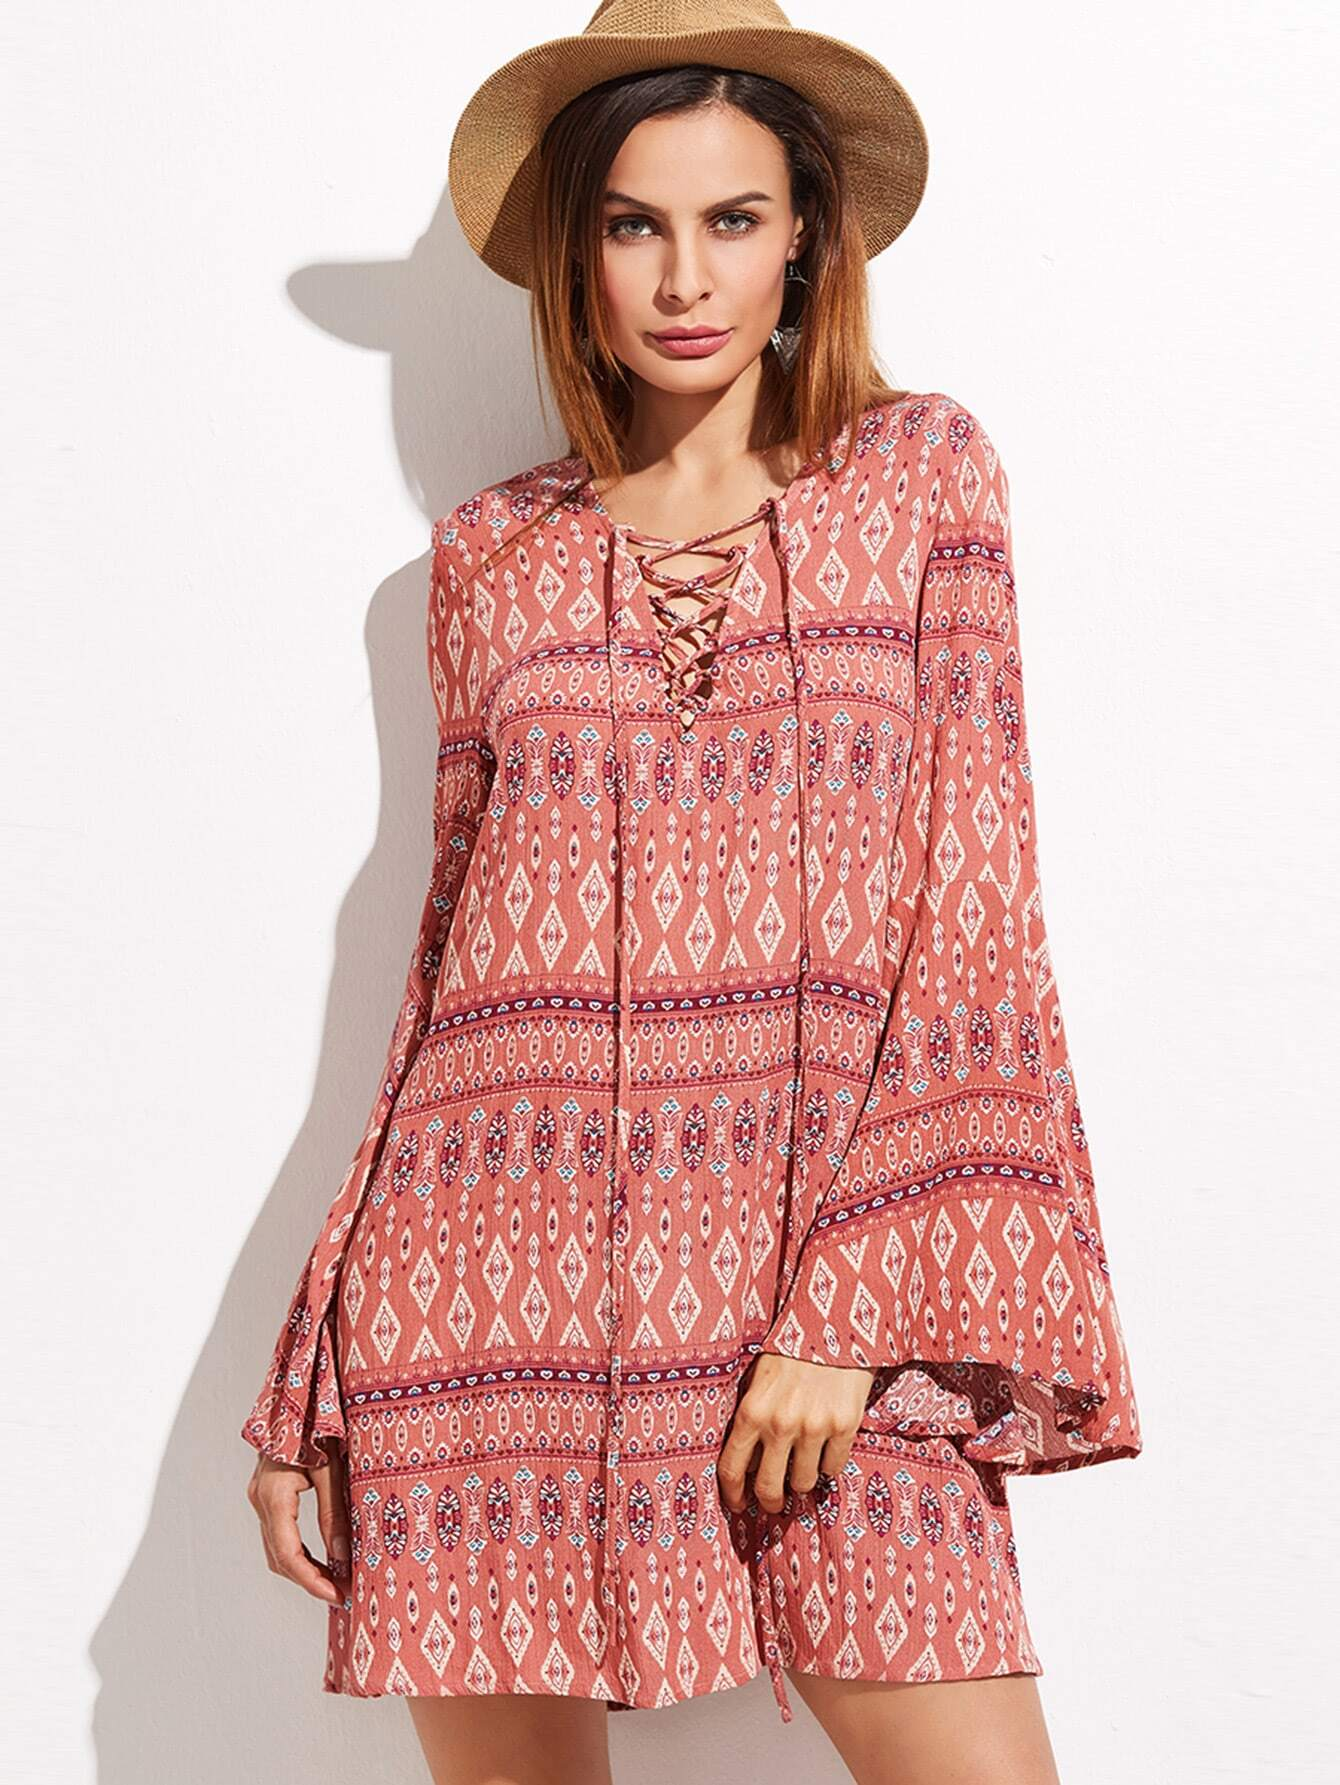 Red Tribal Print Criss Cross Front Bell Sleeve DressRed Tribal Print Criss Cross Front Bell Sleeve Dress<br><br>color: Red<br>size: L,M,S